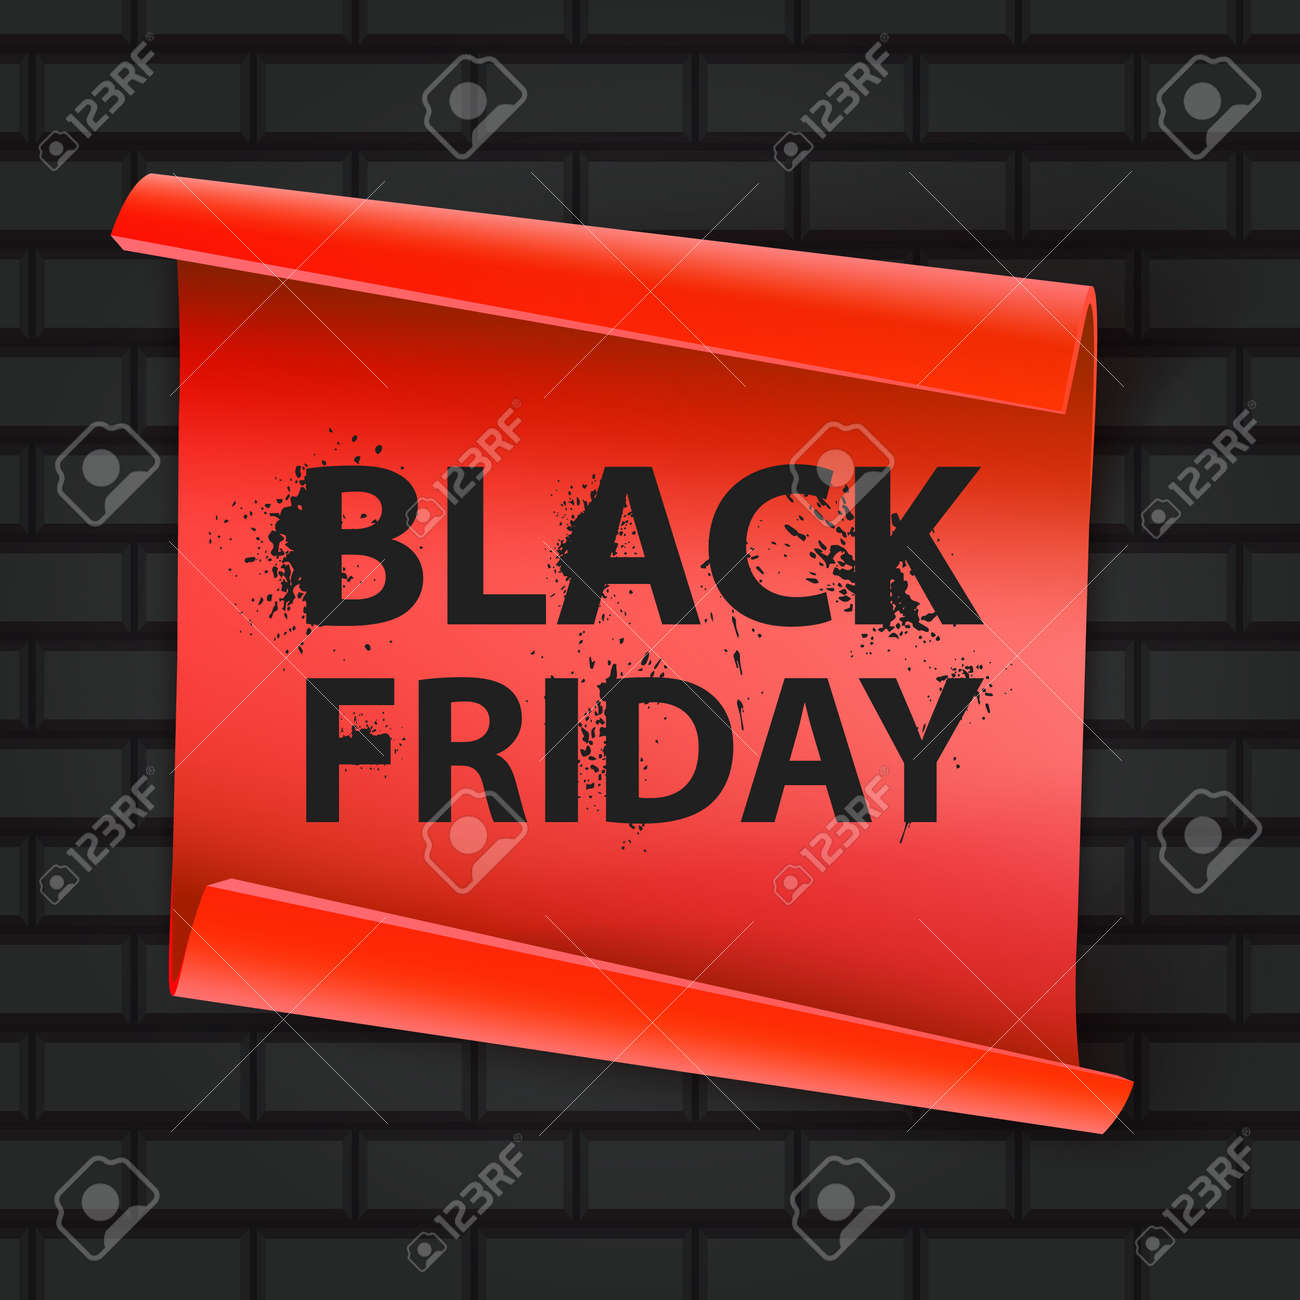 Black Friday inscription on a brick background. Concept of sale, clearance and discount, vector format - 173282673